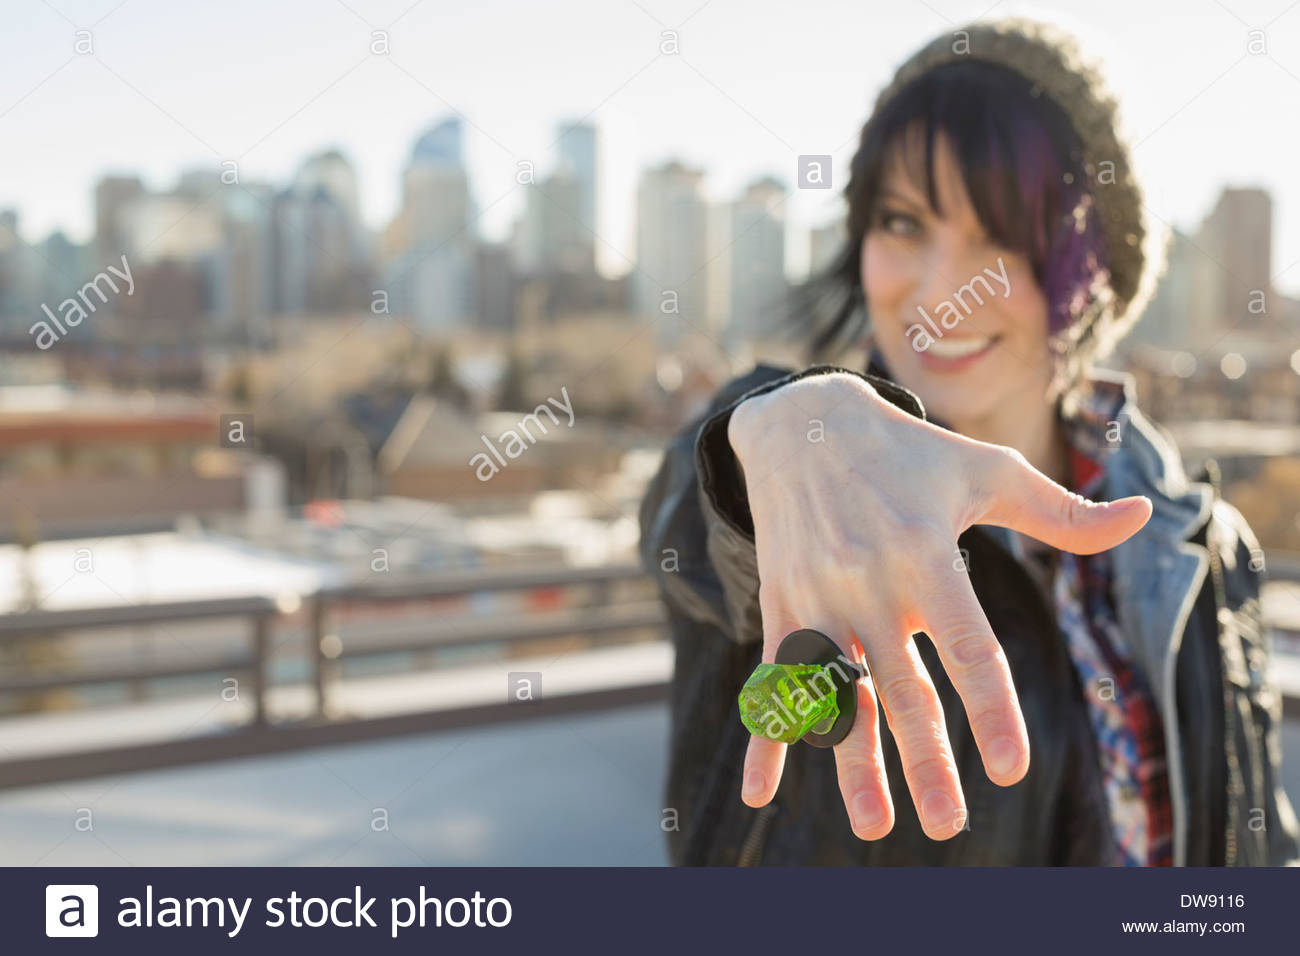 Smiling woman showing off candy ring - Stock Image